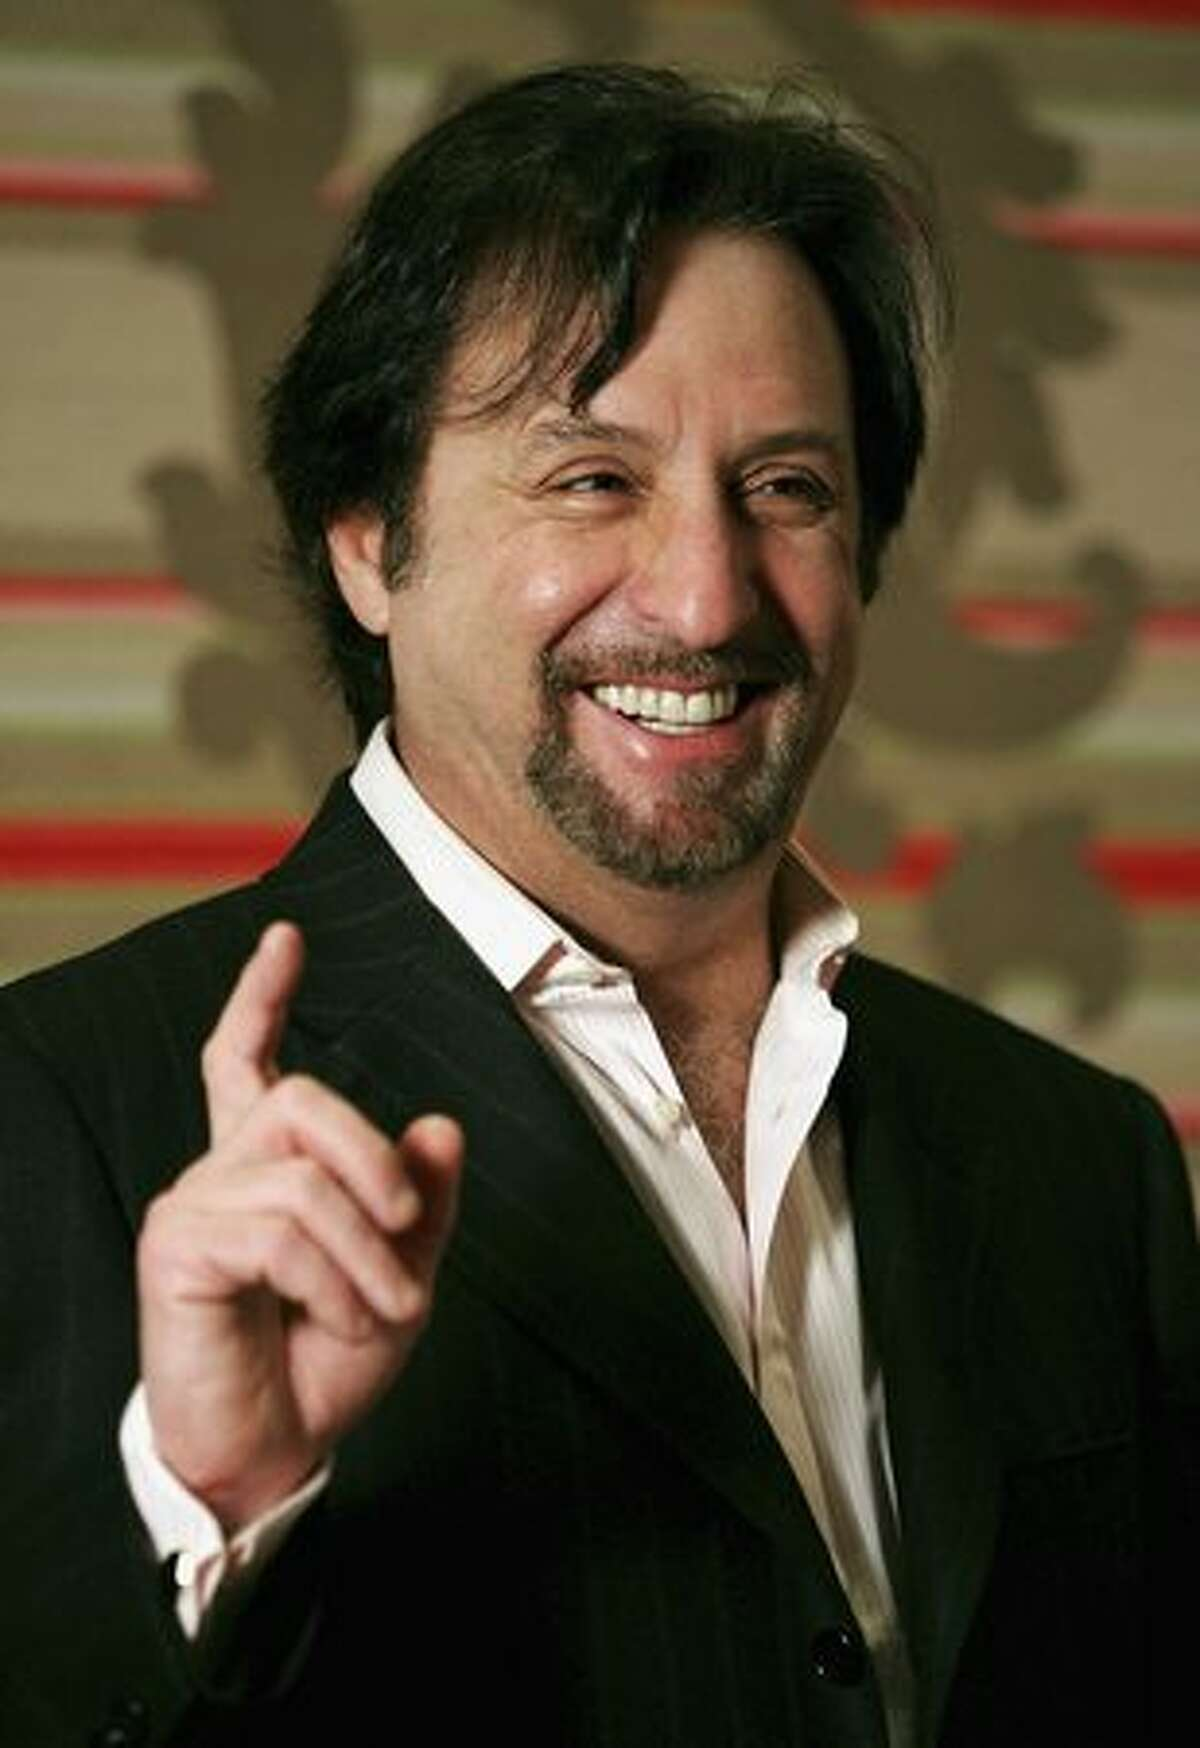 Actor Ron Silver launching his latest film